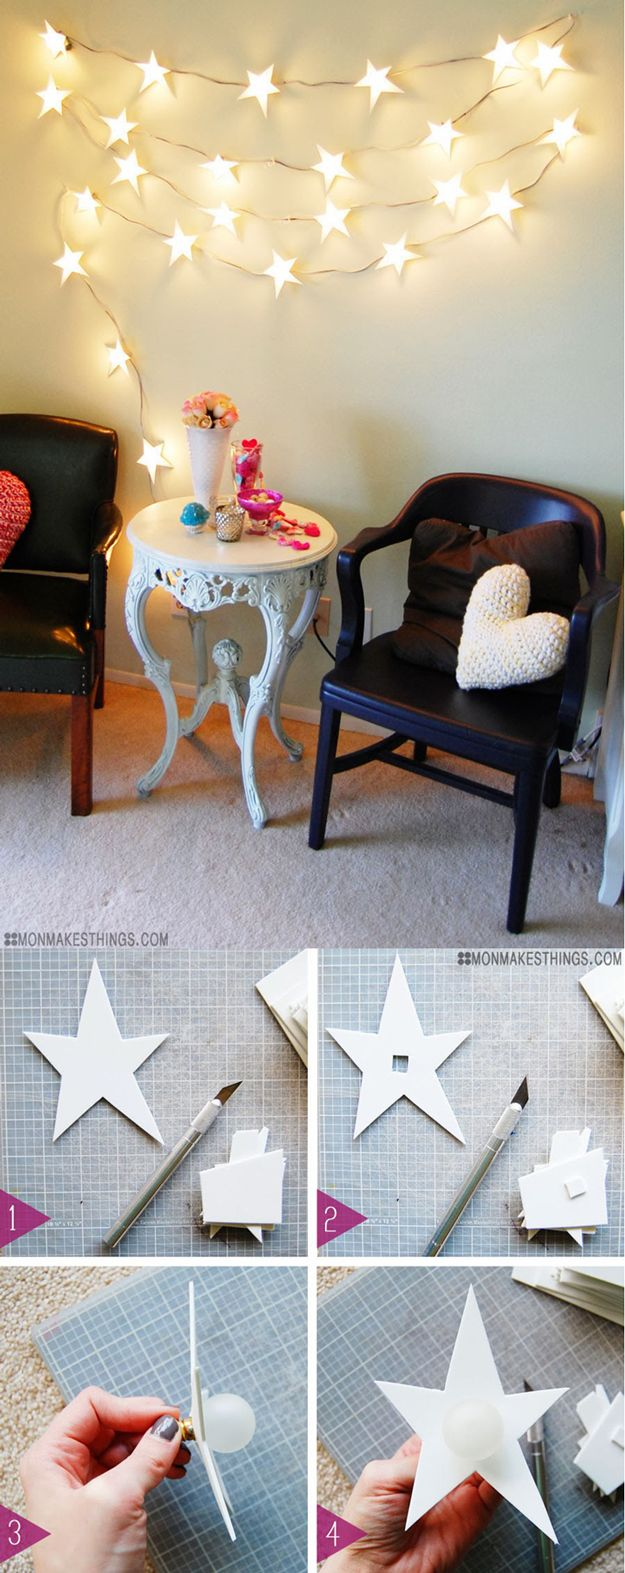 Star Light Garland | Chic and Girly Bedroom Decor Ideas by Diy Ready http://diyready.com/diy-room-decor-with-string-lights-you-can-use-year-round/